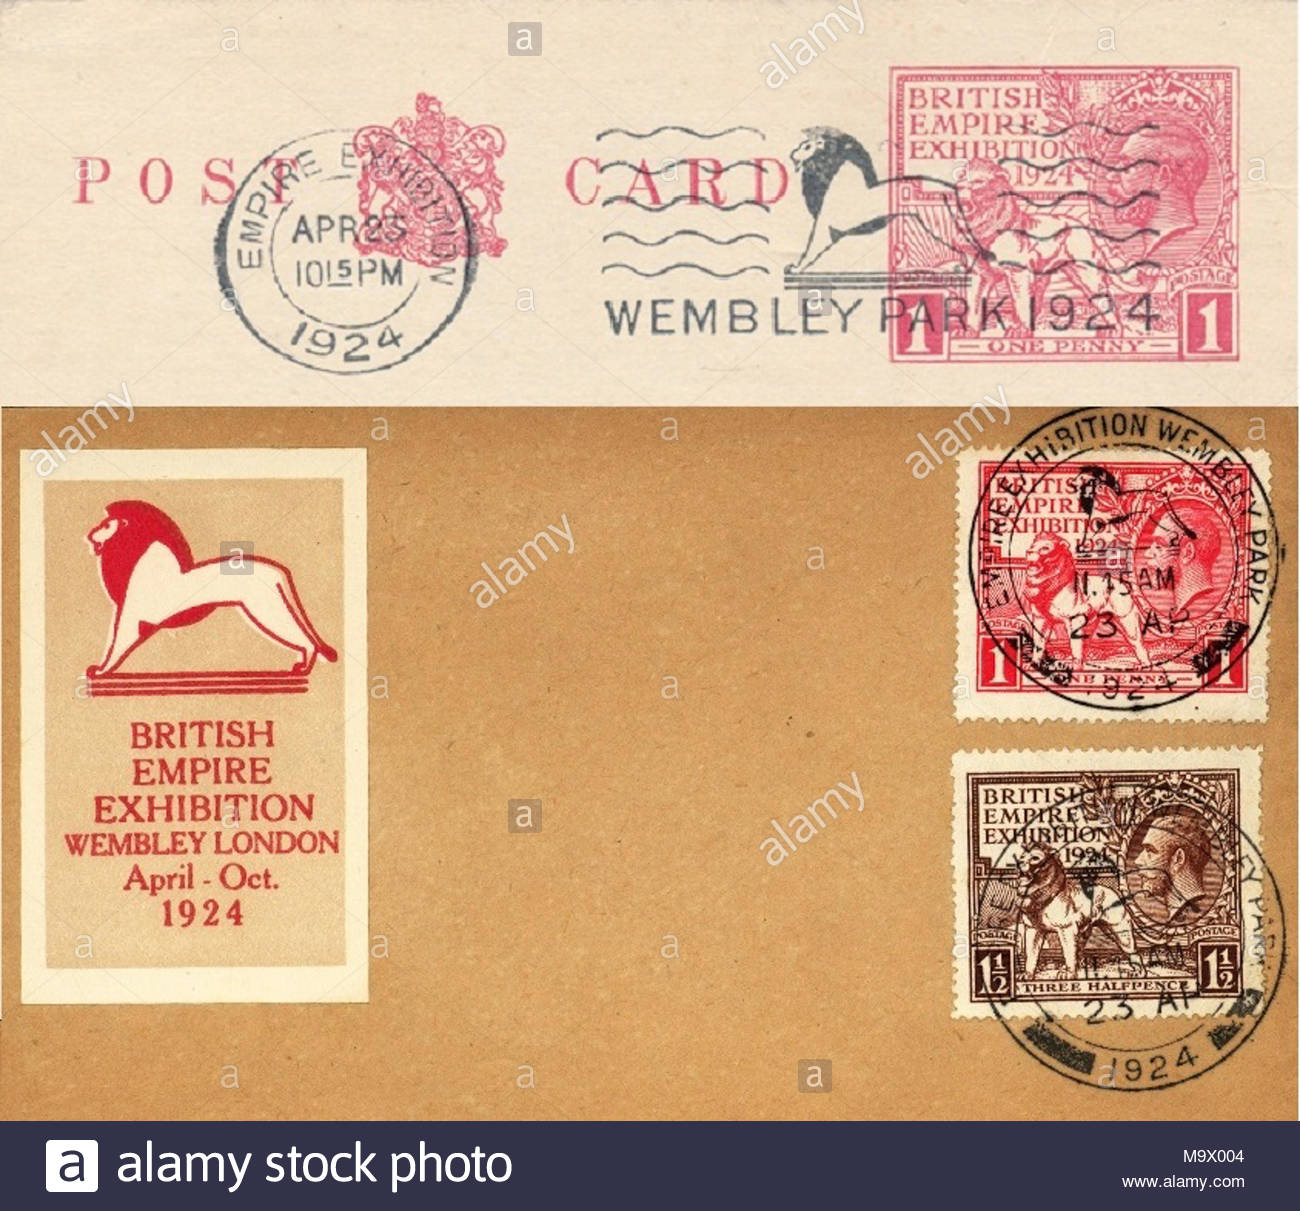 British Empire Postmark Stock Photos British Empire Postmark Stock